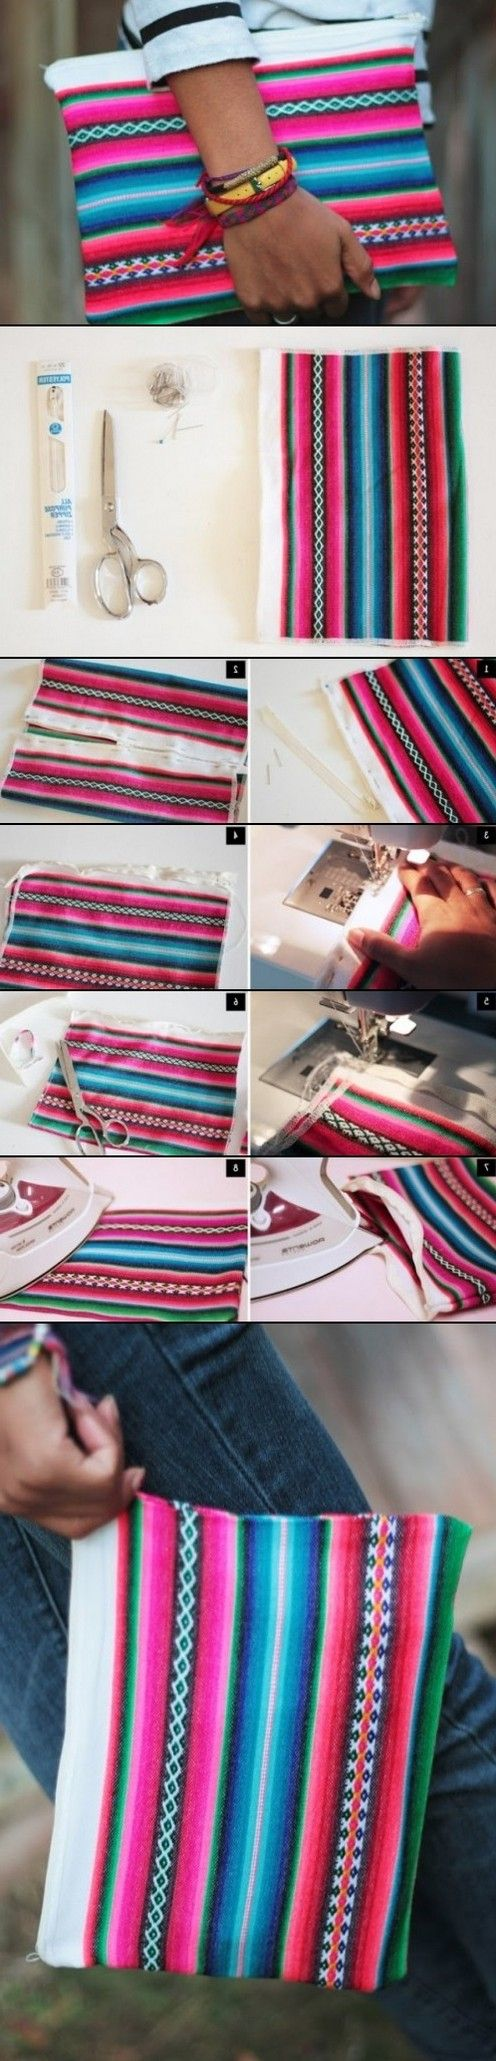 bolso (http://interestings.org/diy-colorful-purse/)